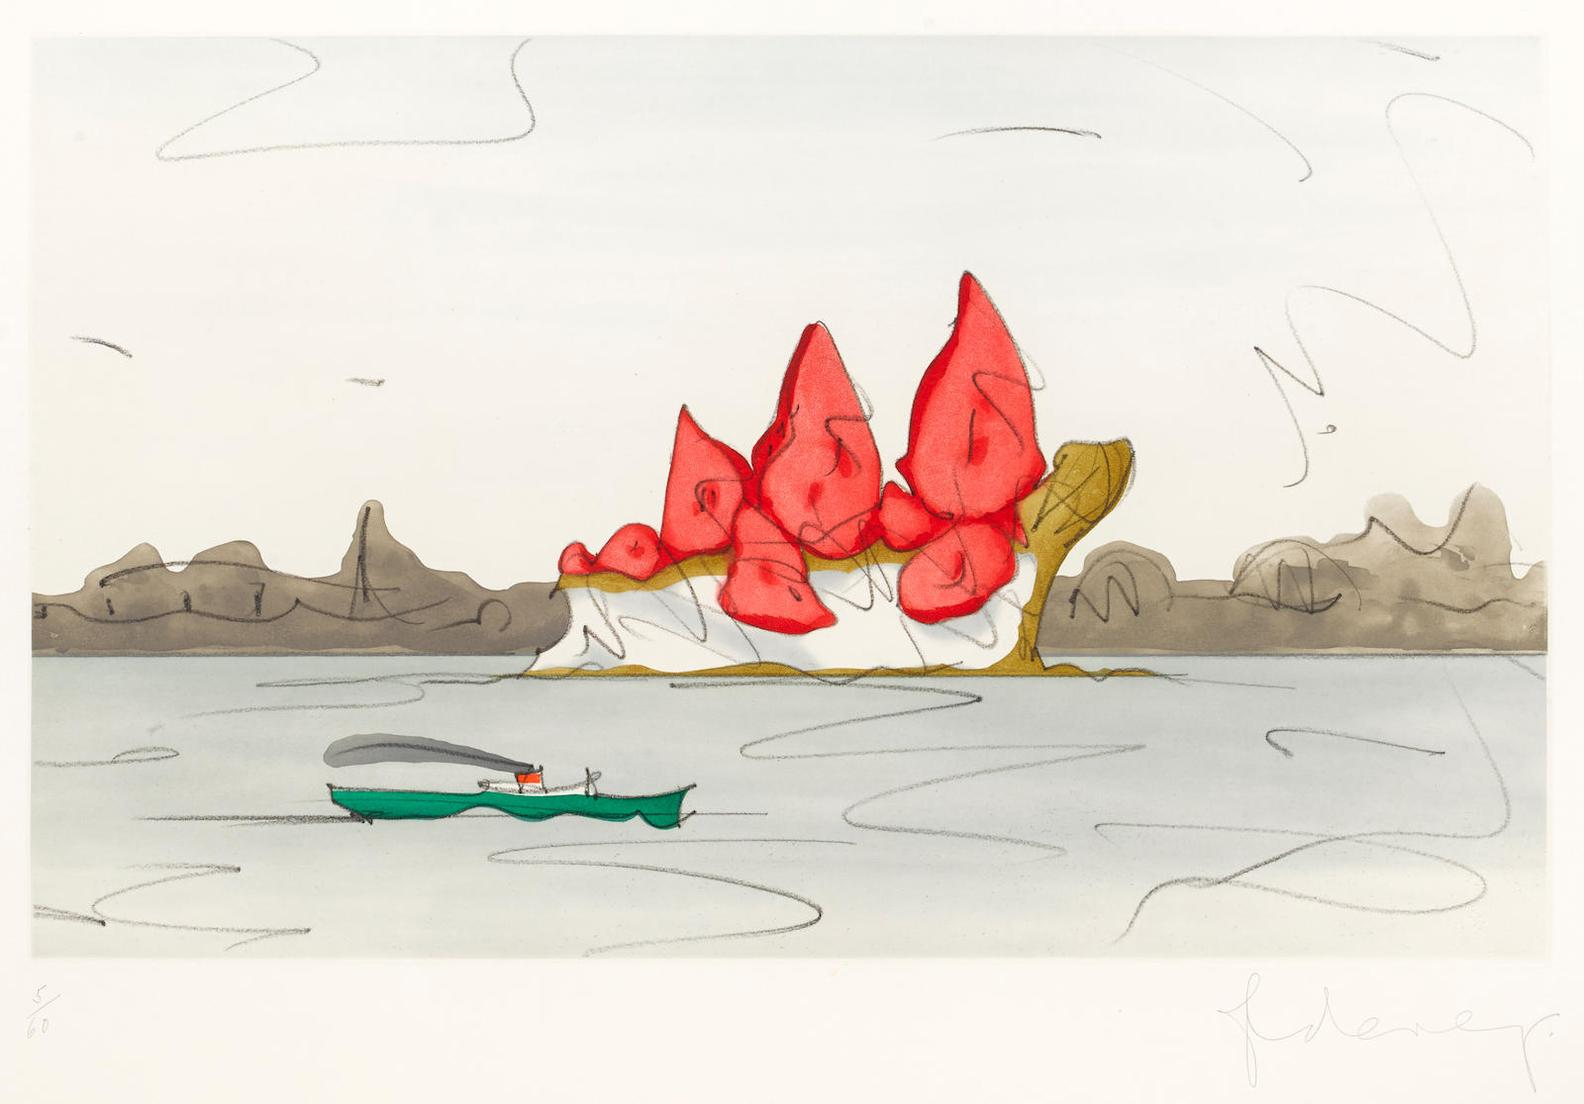 Claes Oldenburg-Proposed Monument For Mill Rock, East River, Nyc: Slice Of Strawberry Cheesecake-1992